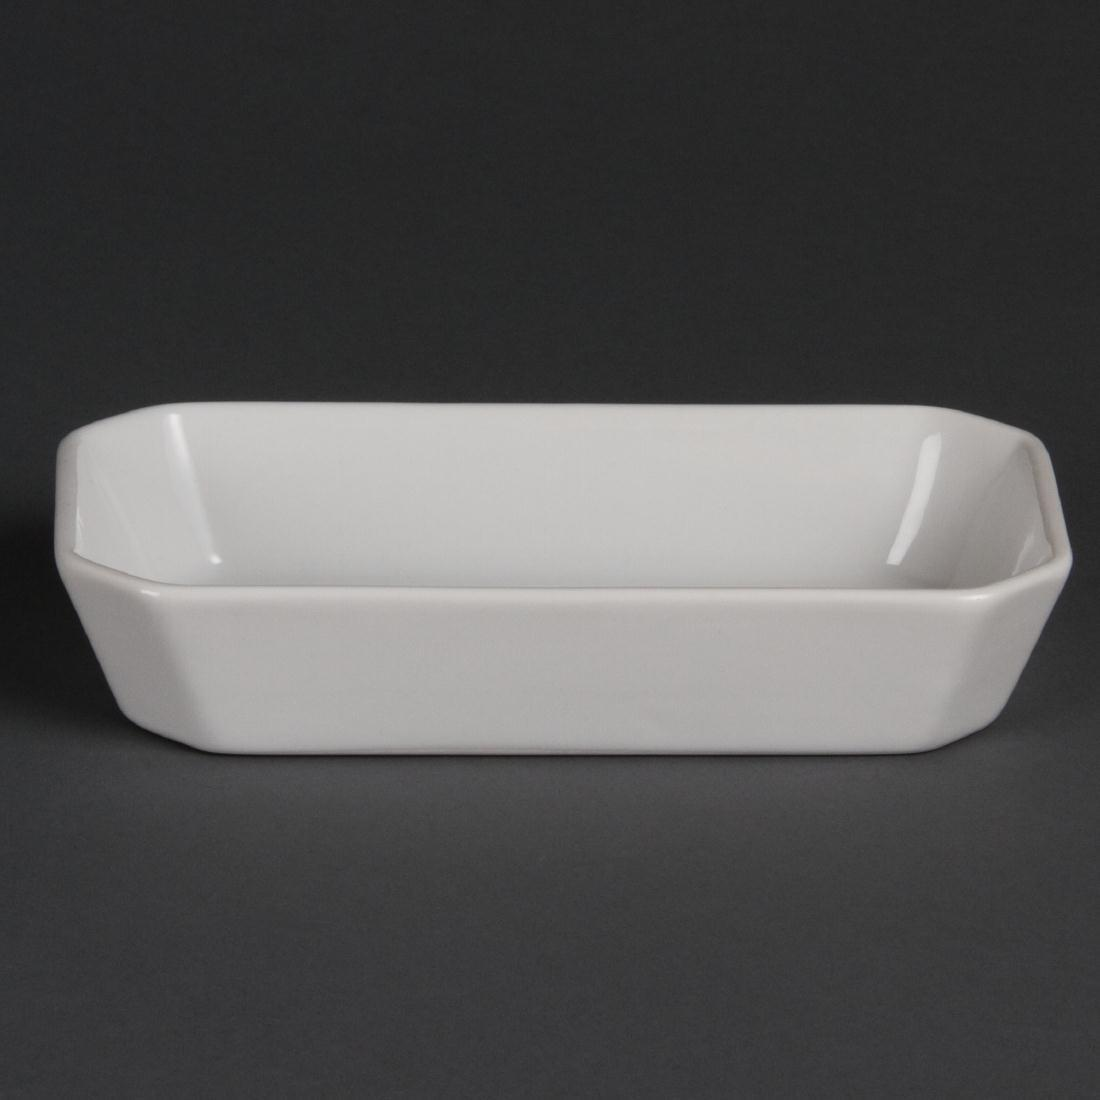 Olympia Whiteware Oblong Hors d'Oeuvre Dishes 185mm